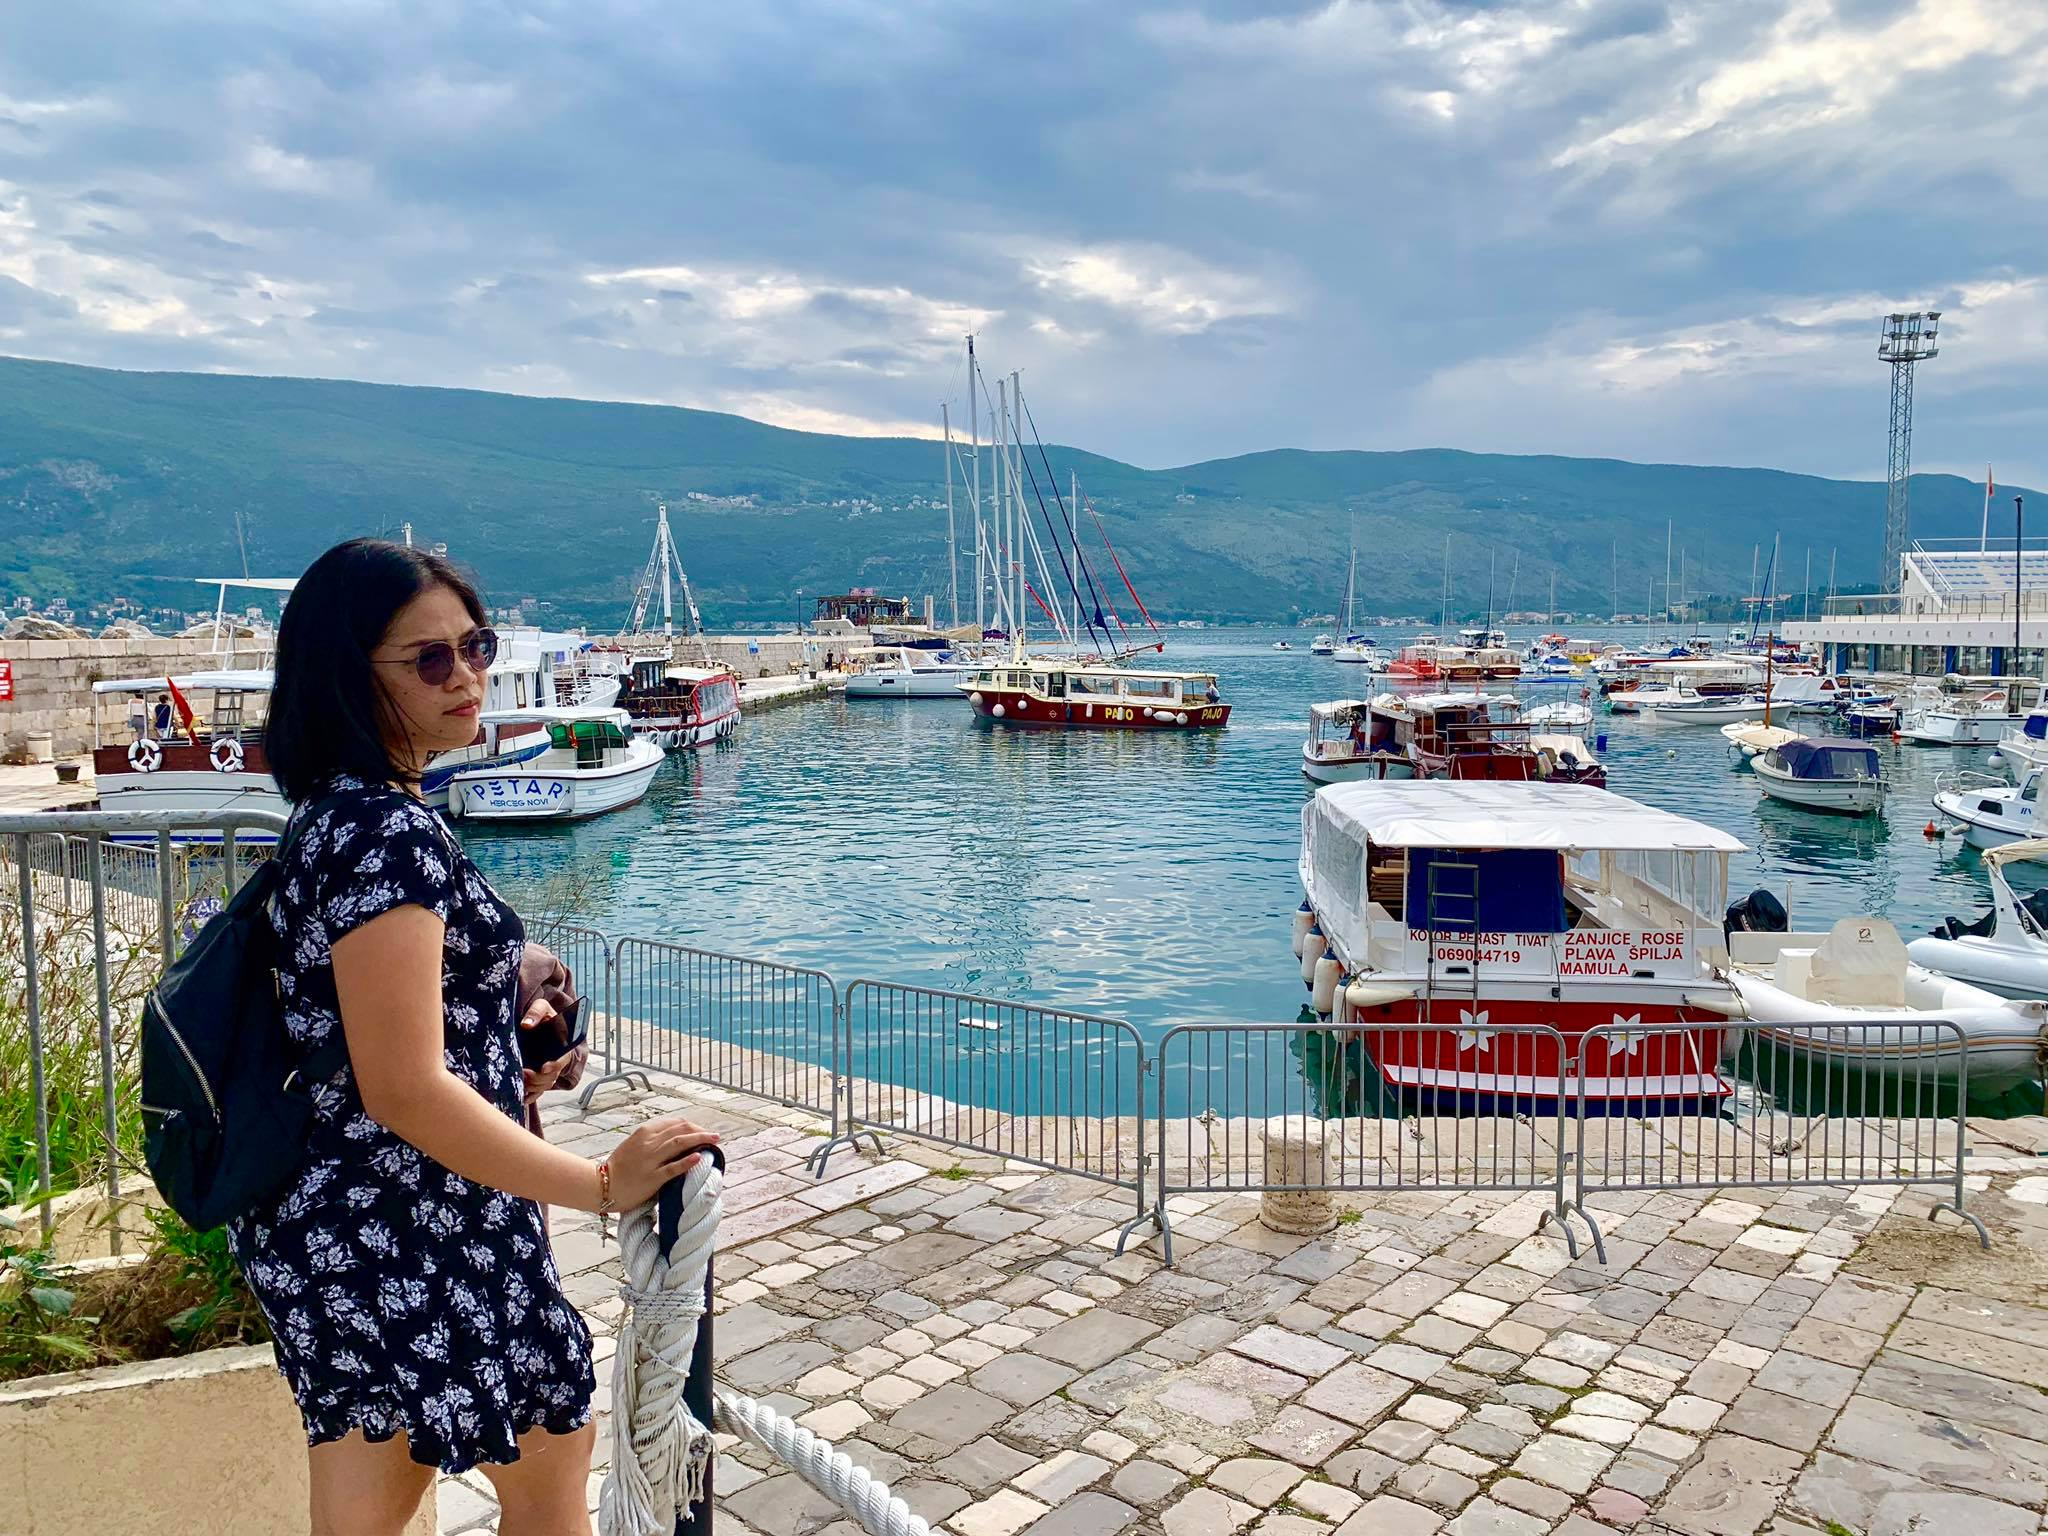 Expat Life in Montenegro Day 3 We have our first visitor already in our new home here in Herceg Novi19.jpg